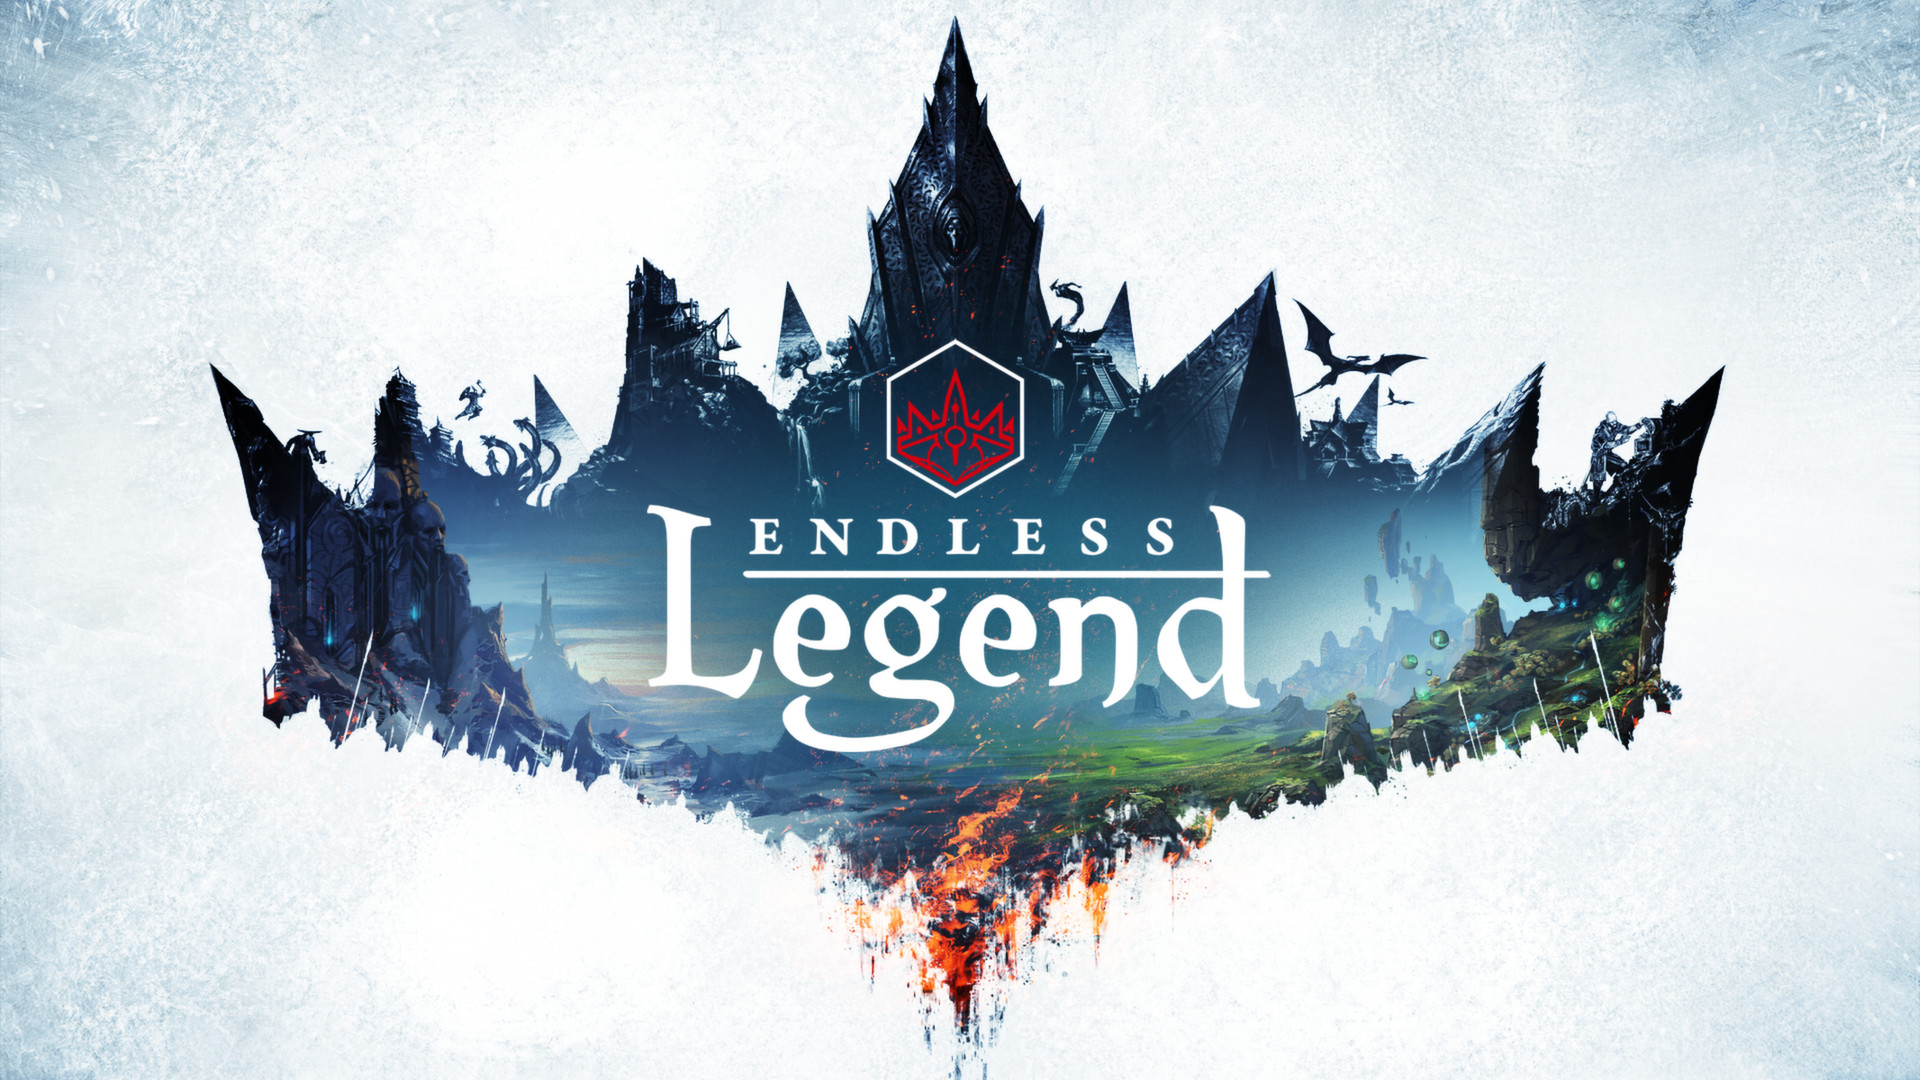 Endless Legend.